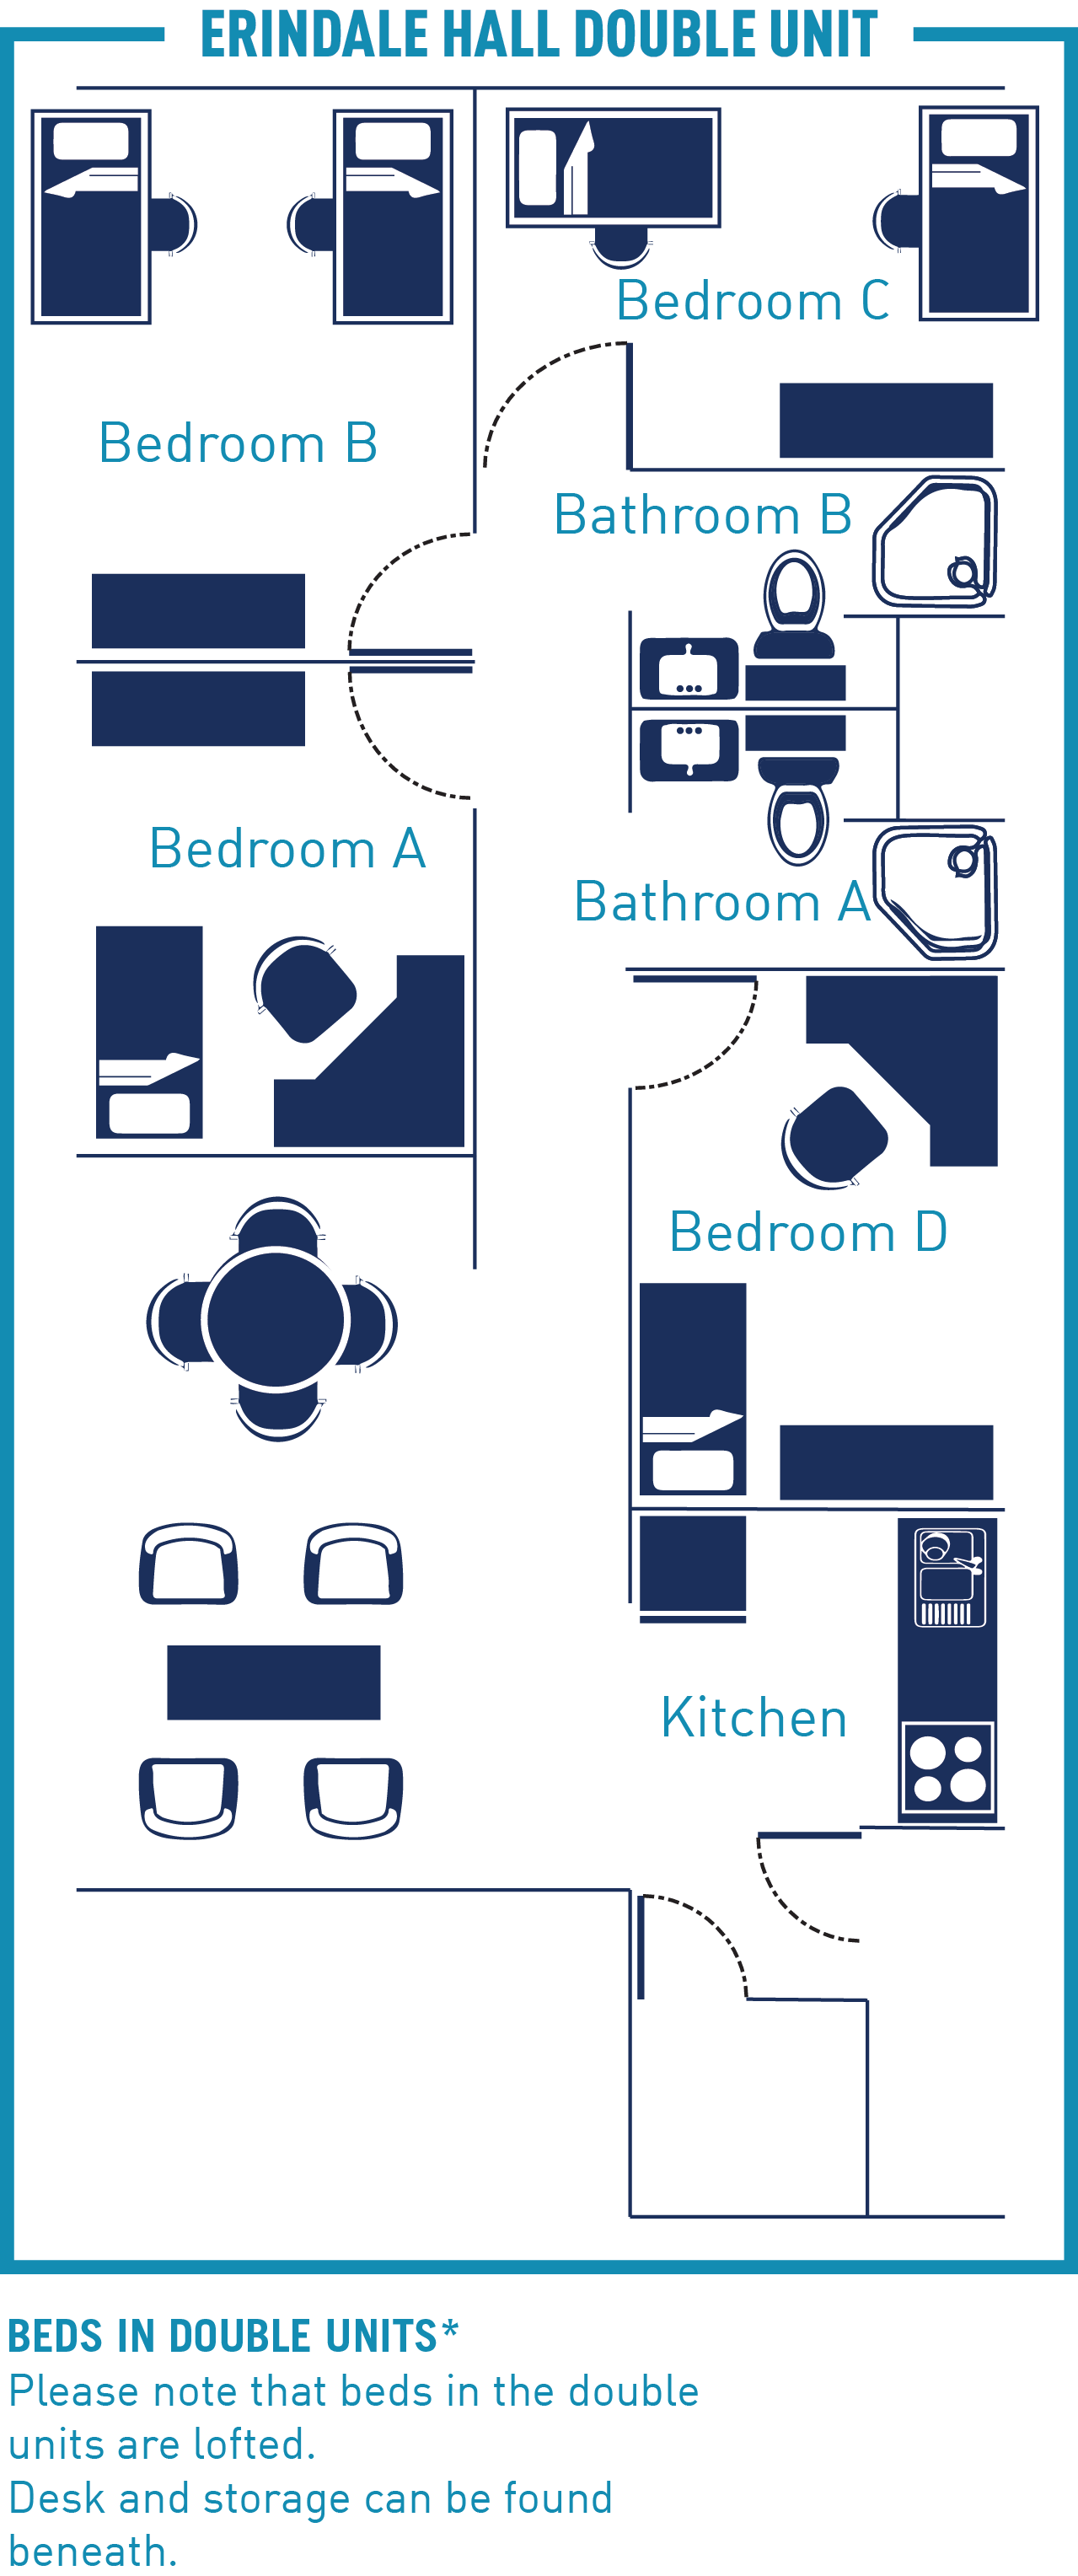 Floor plan of an Erindale Hall Unit